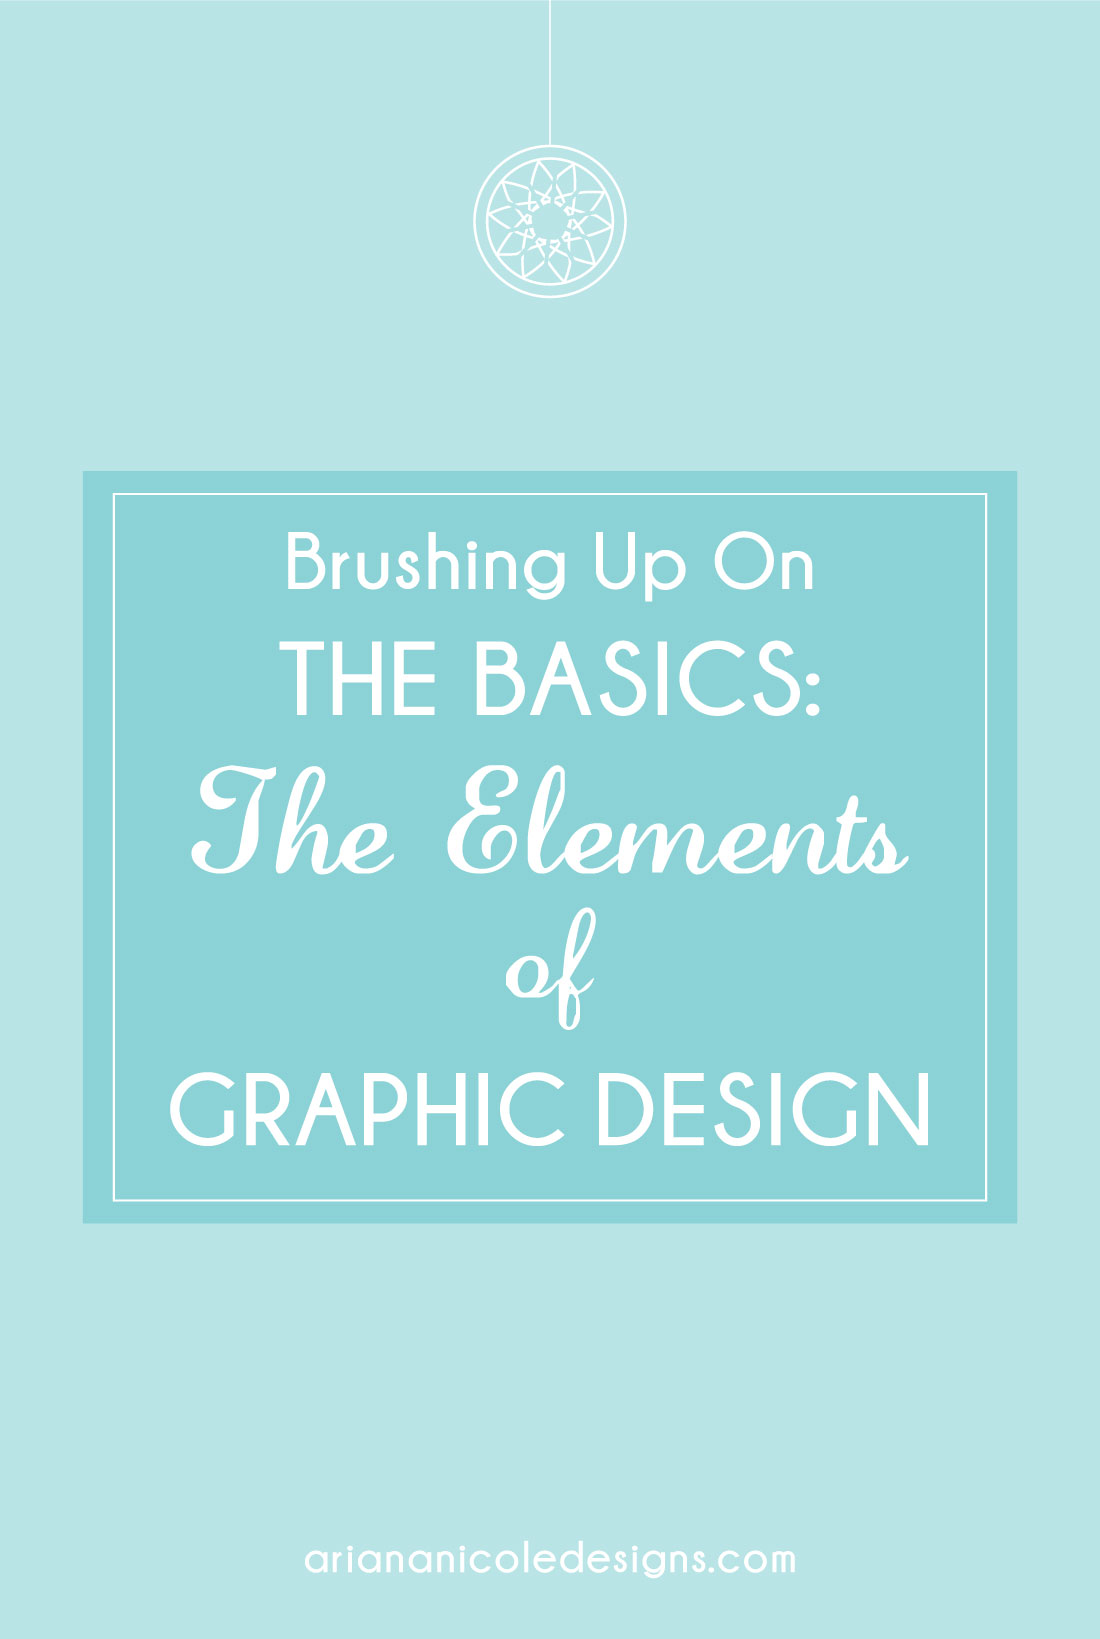 Brushing_Up_On_The_Basics_The_Elements_of_Graphic_Design-1100